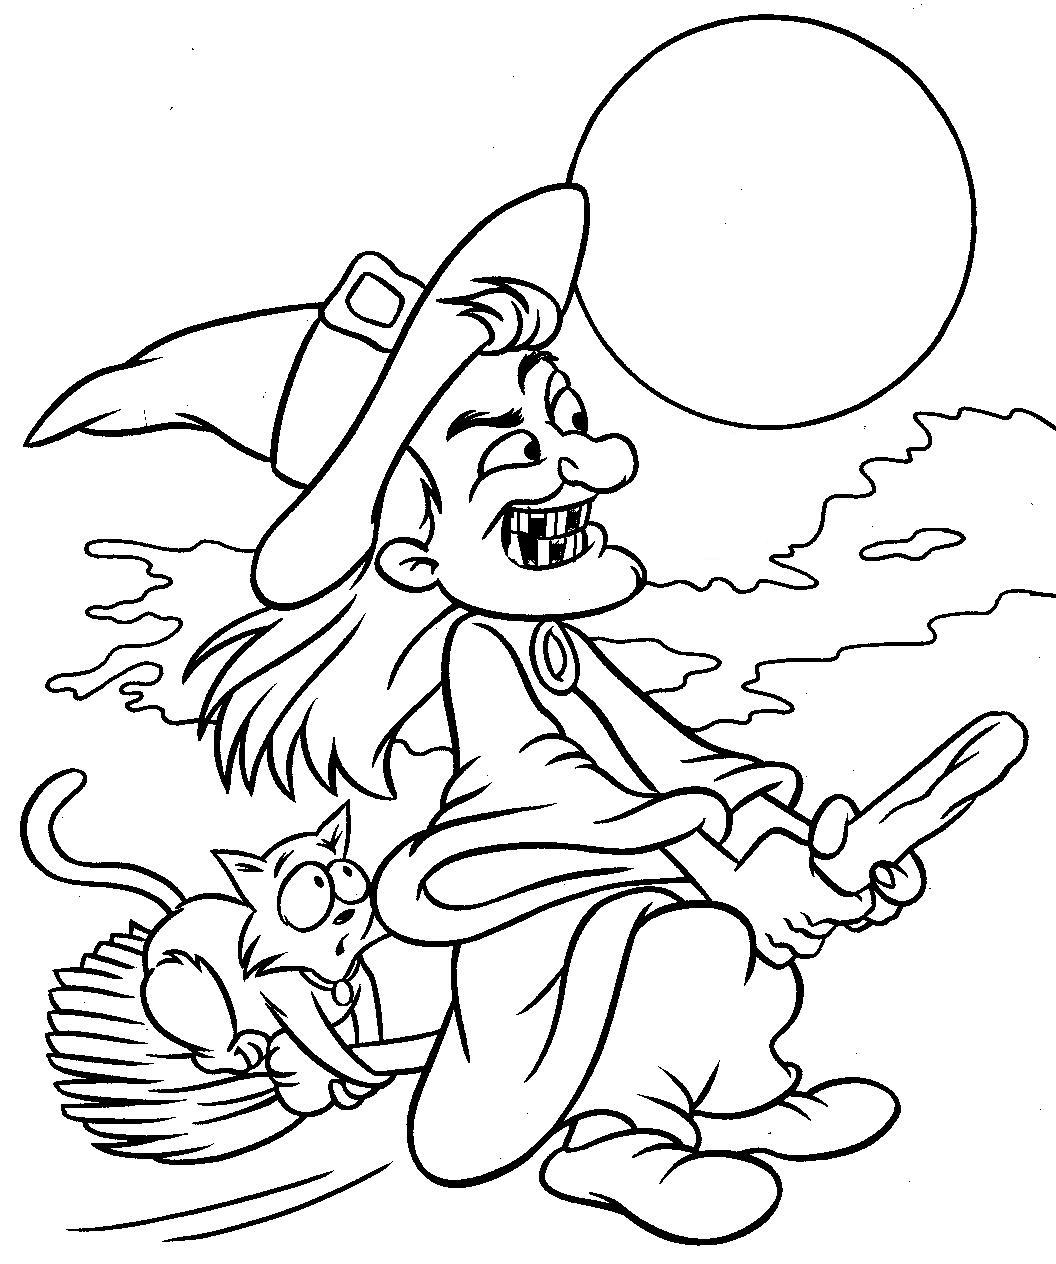 halloween coloring pages online 20 fun halloween coloring pages for kids hative online pages halloween coloring